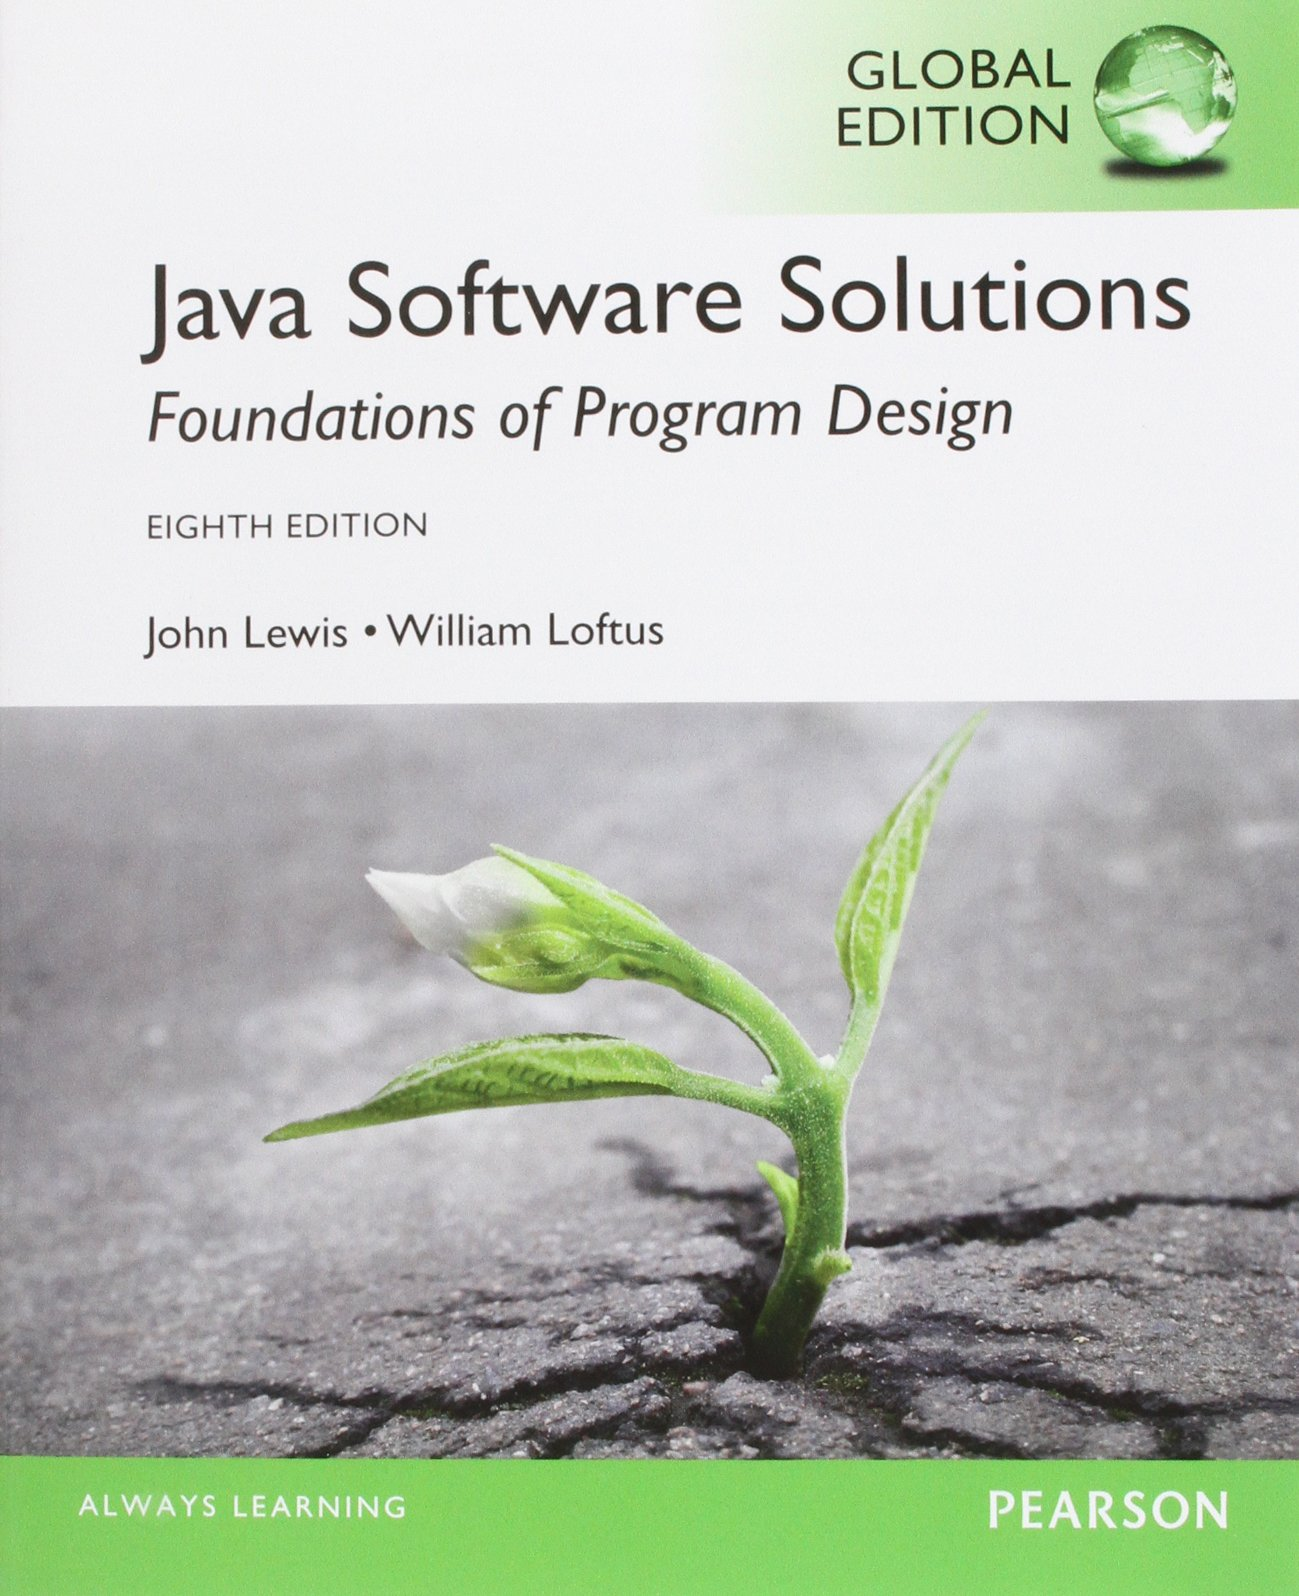 Java Software Solutions Global Edition 9781292018232 Amazon Com